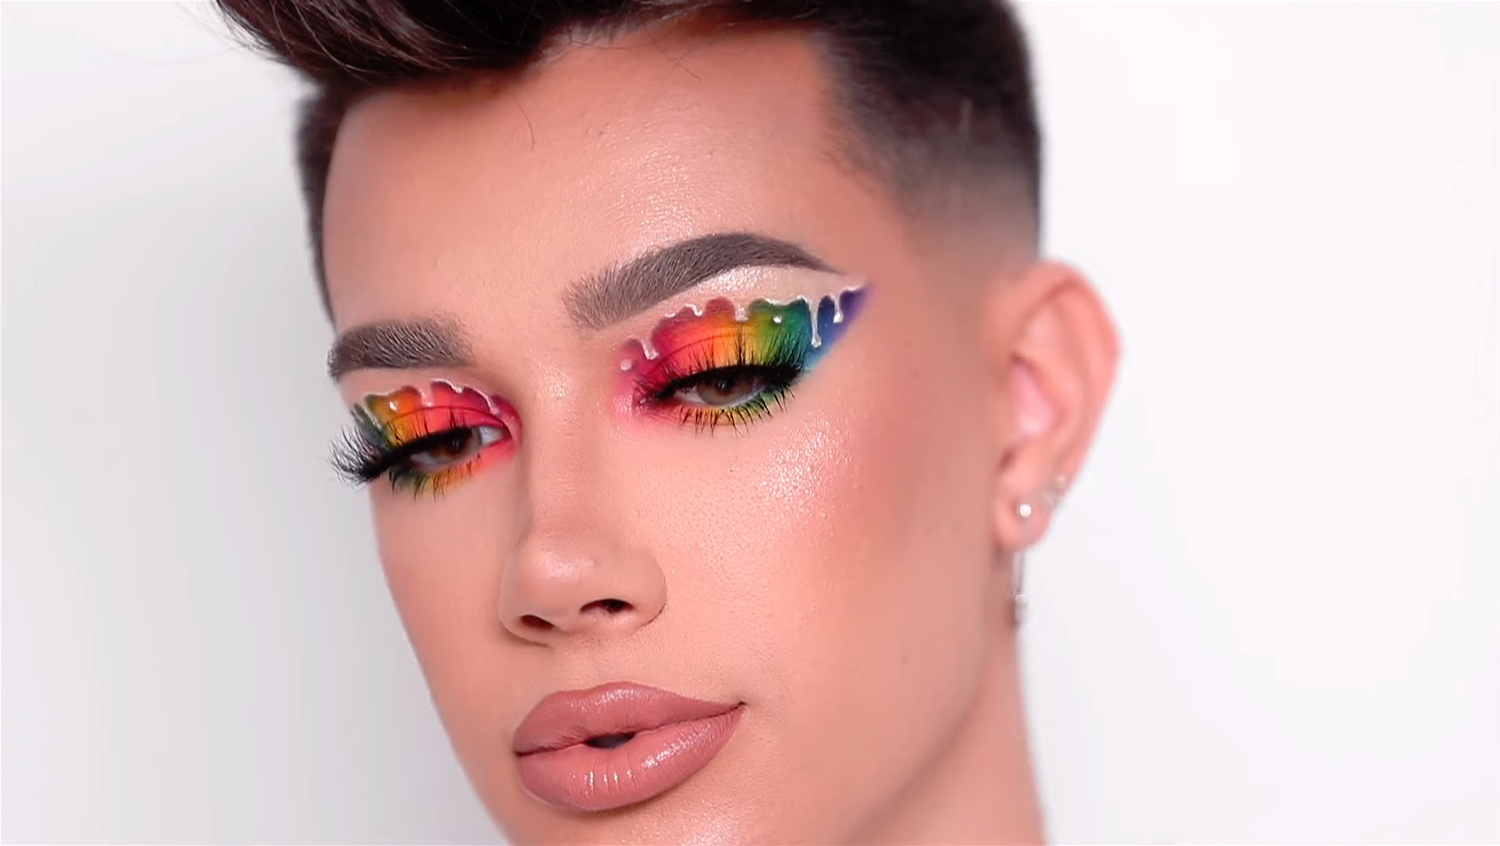 James Charles Returns To YouTube, To Donate All Proceeds From Video To Trevor Project